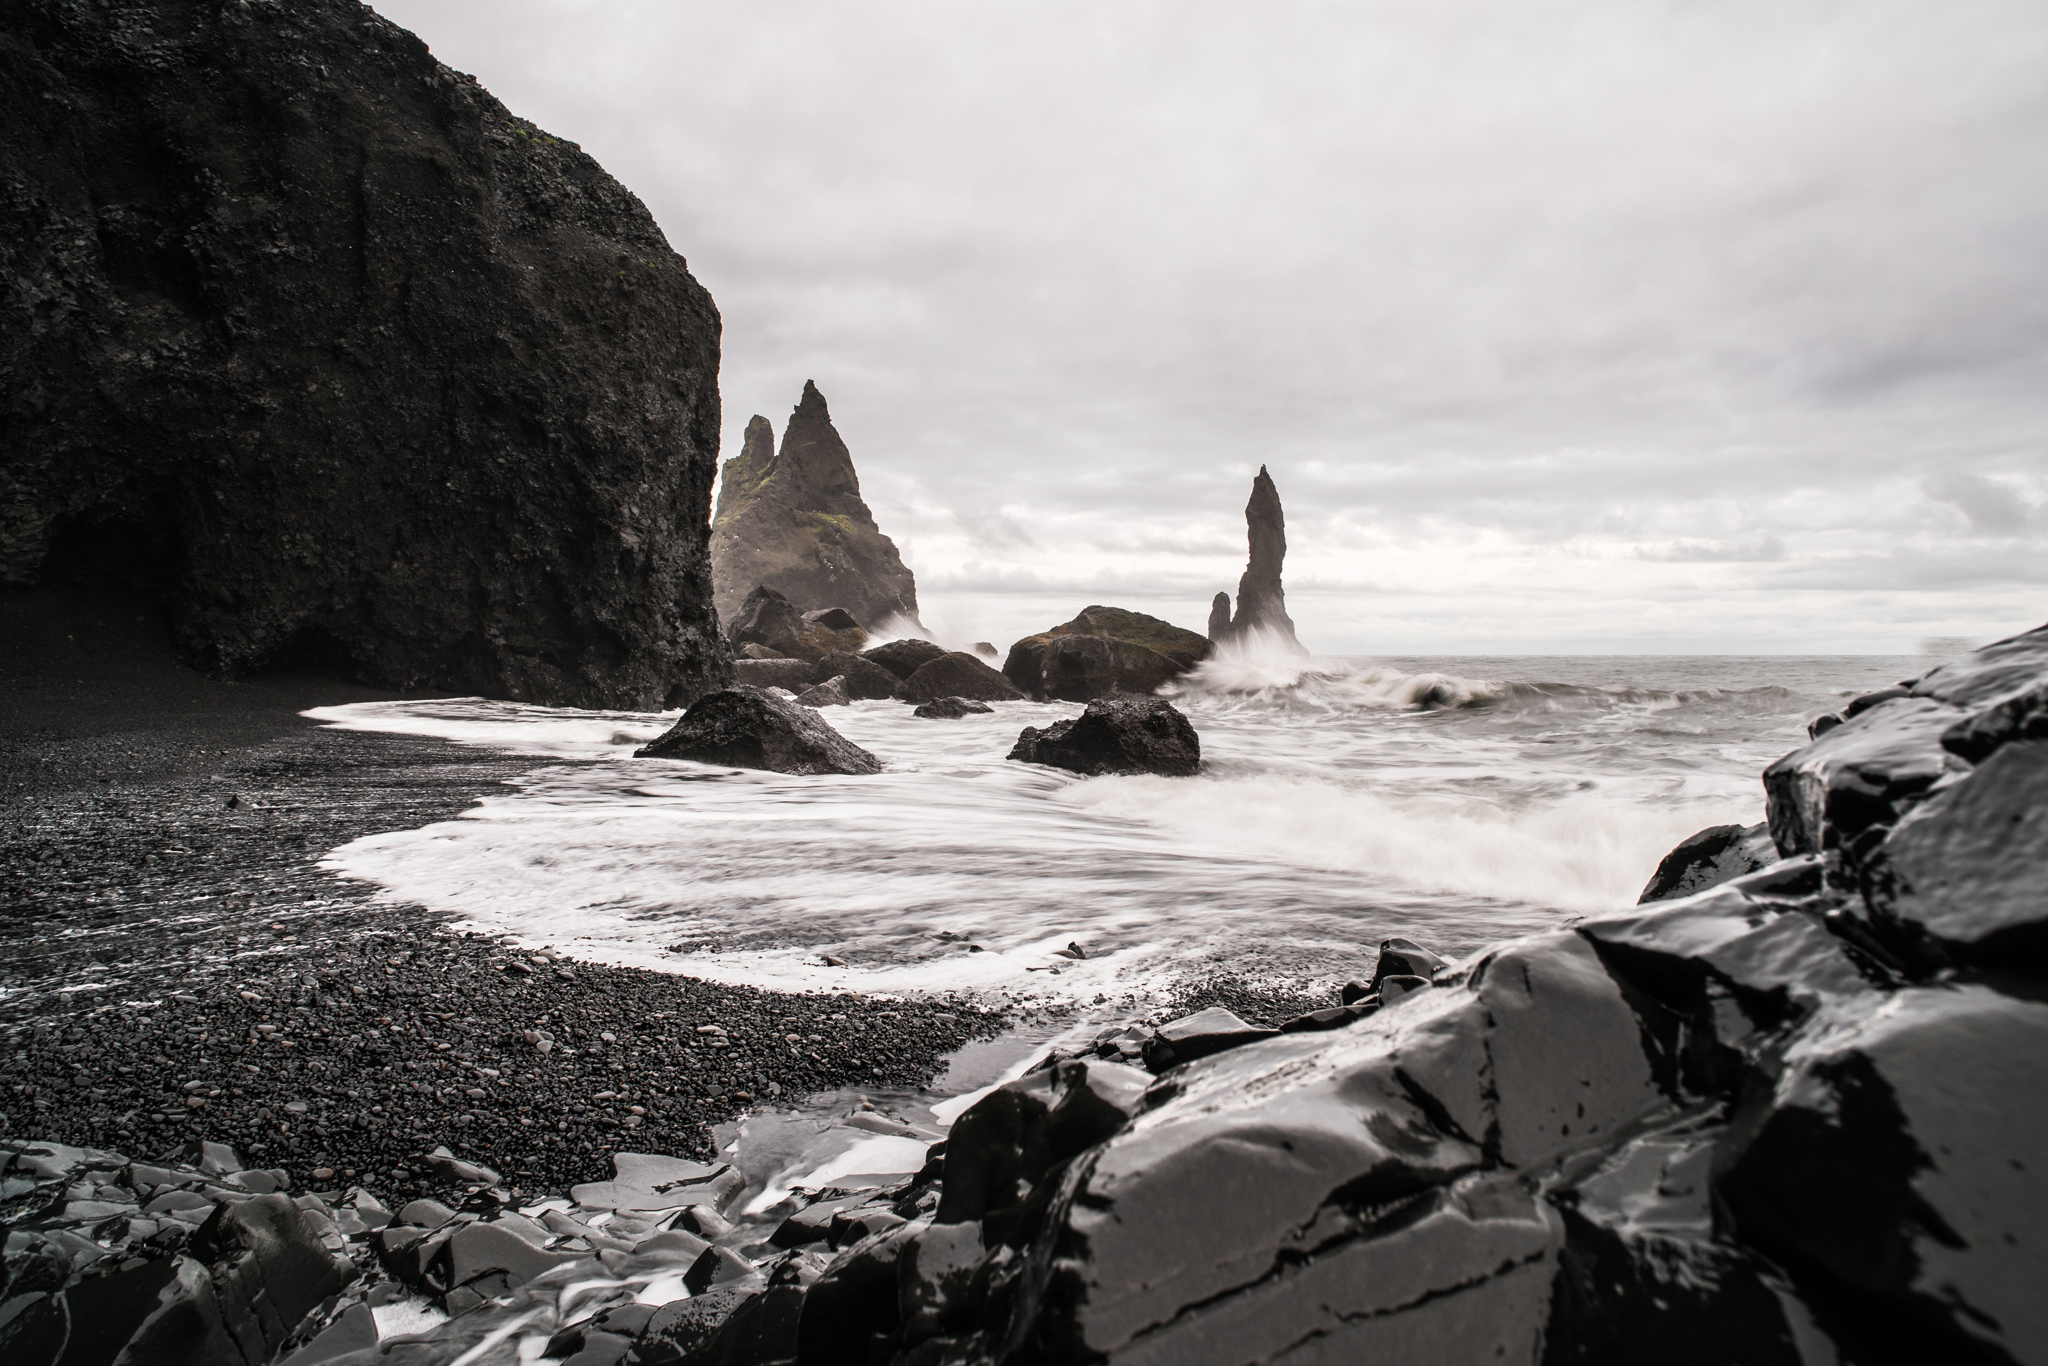 This isn't black and white — you can tell if you look closely at the rocks in the distance. The saturation isn't even muted. It's from the Reynisfjara black sand beach in southern Iceland, on an awfully grey day. I almost killed my camera getting this shot, resting it on a small tripod atop a rock that kept getting splashed with ocean water. Quick reflexes kept it dry … until they didn't.